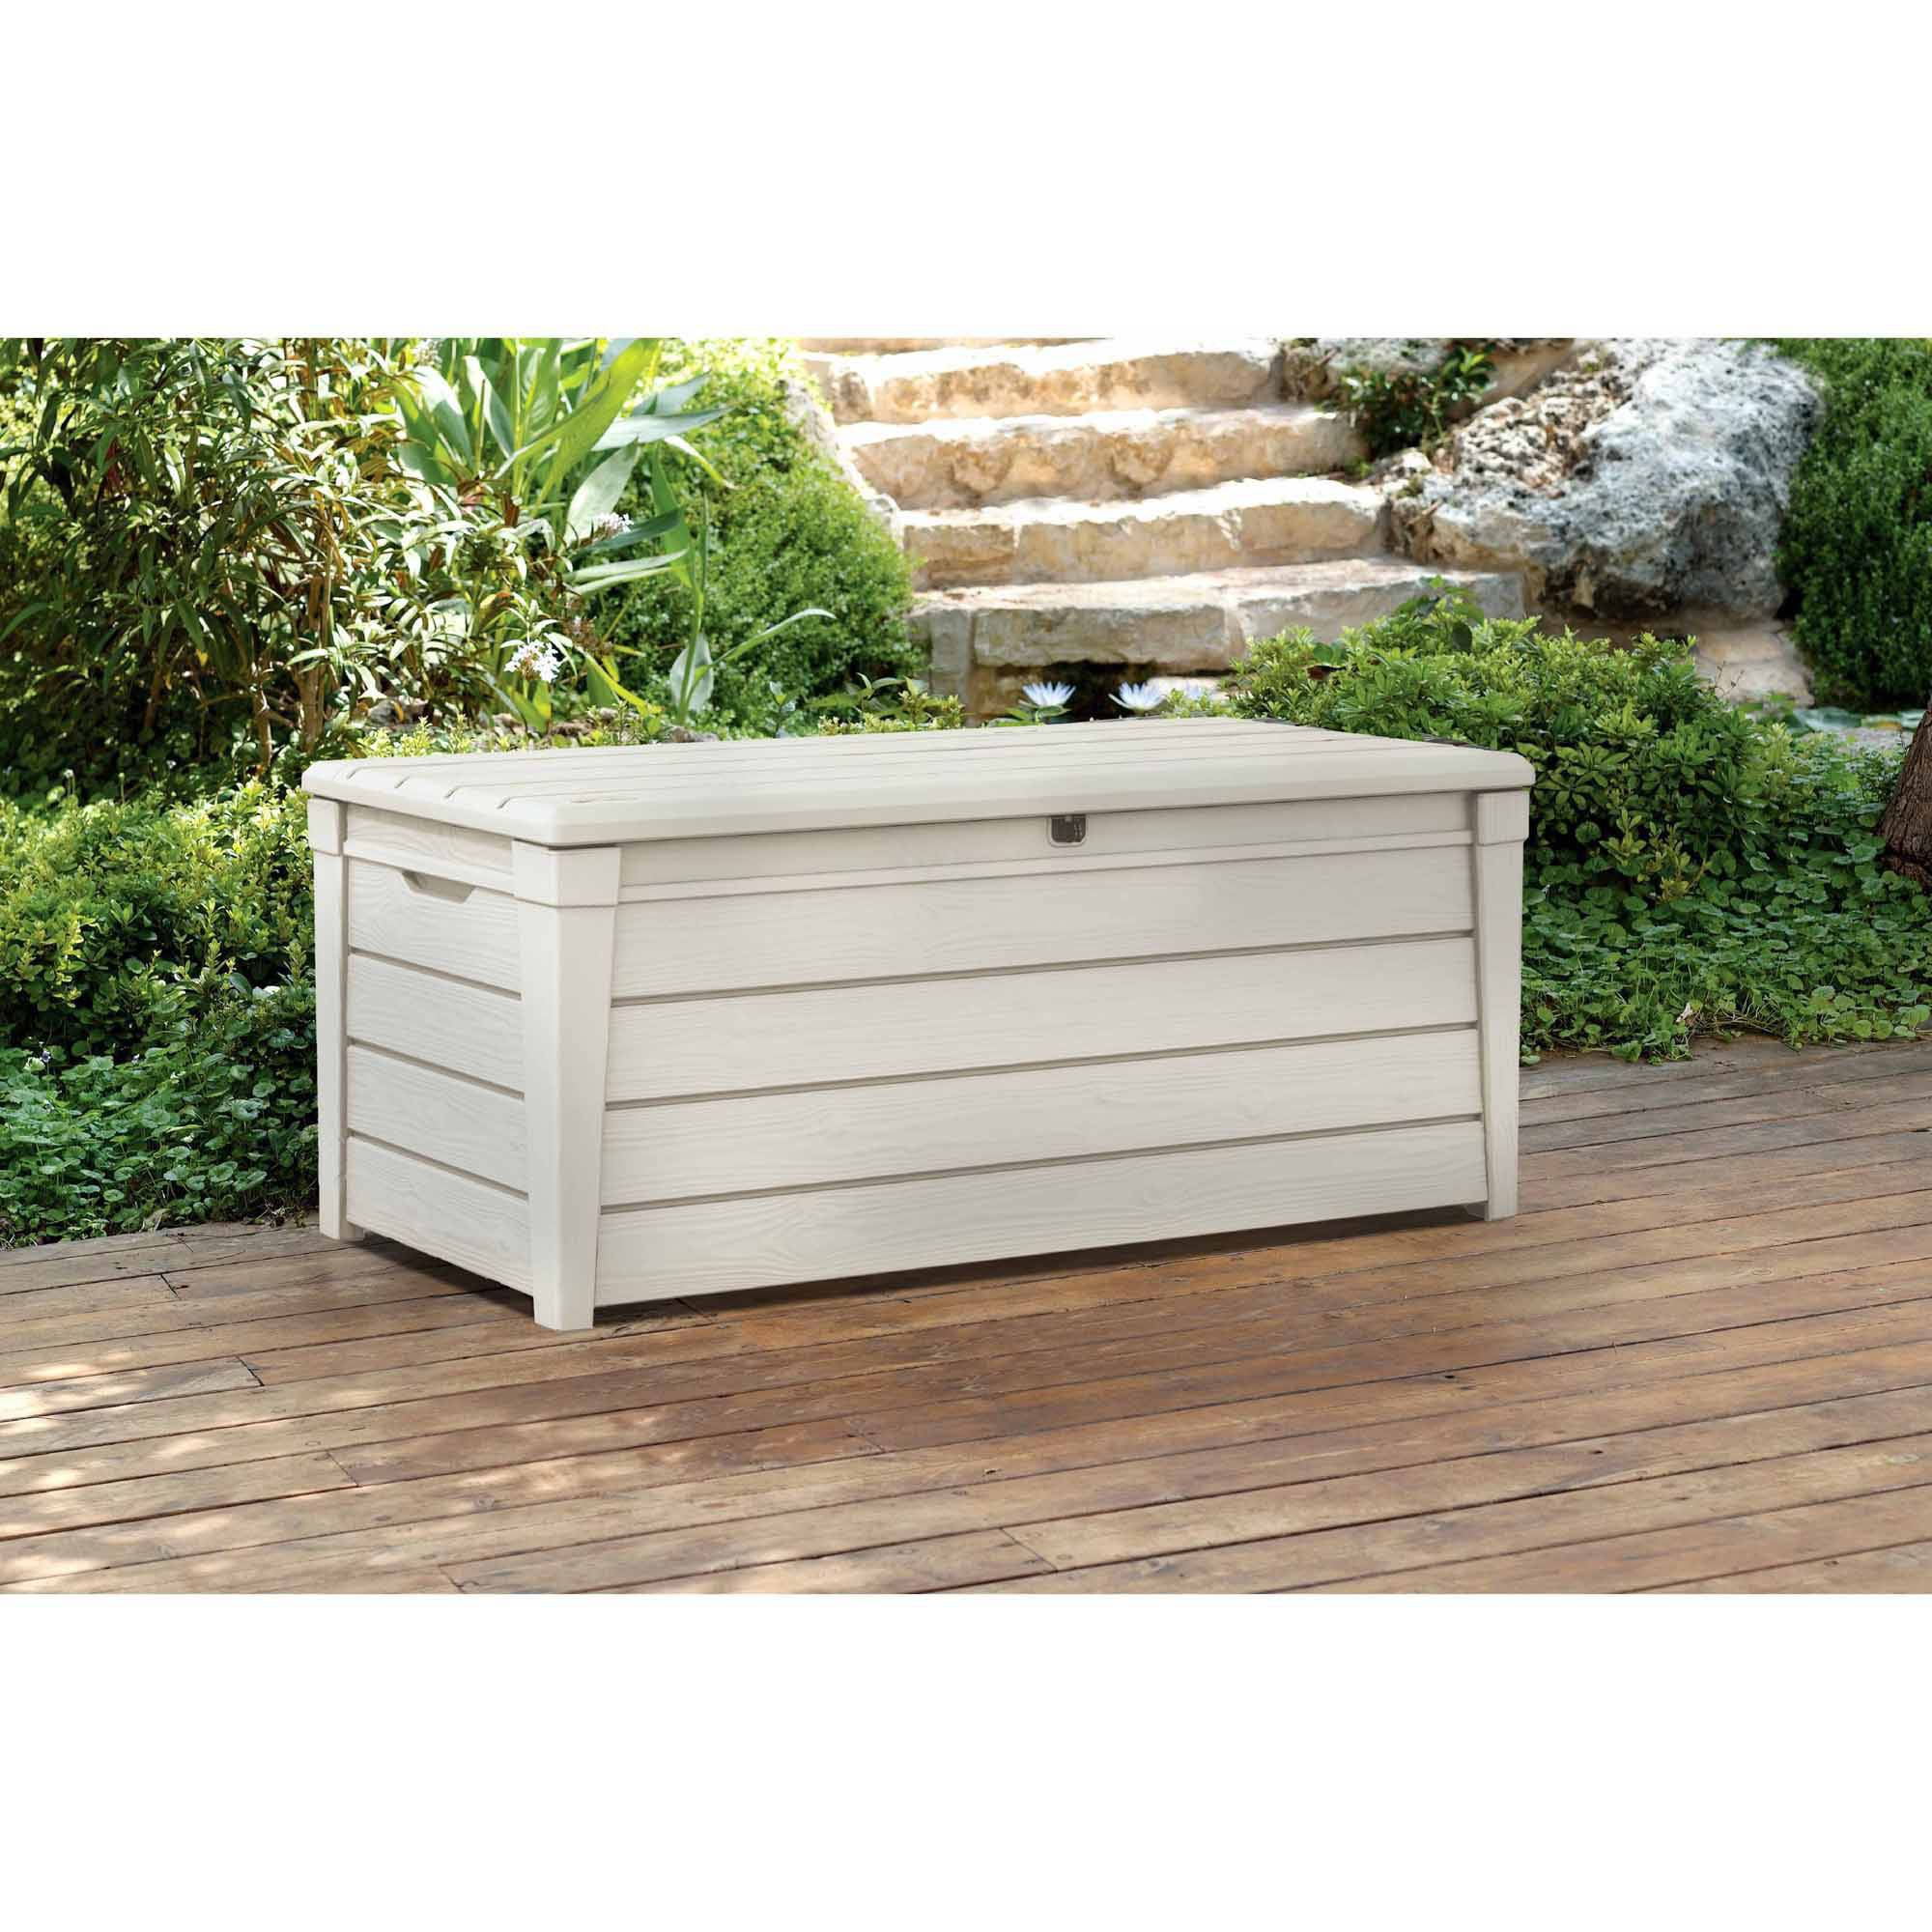 Outdoor Firewood Storage Containers Keter Brightwood Outdoor Plastic Deck Storage Container